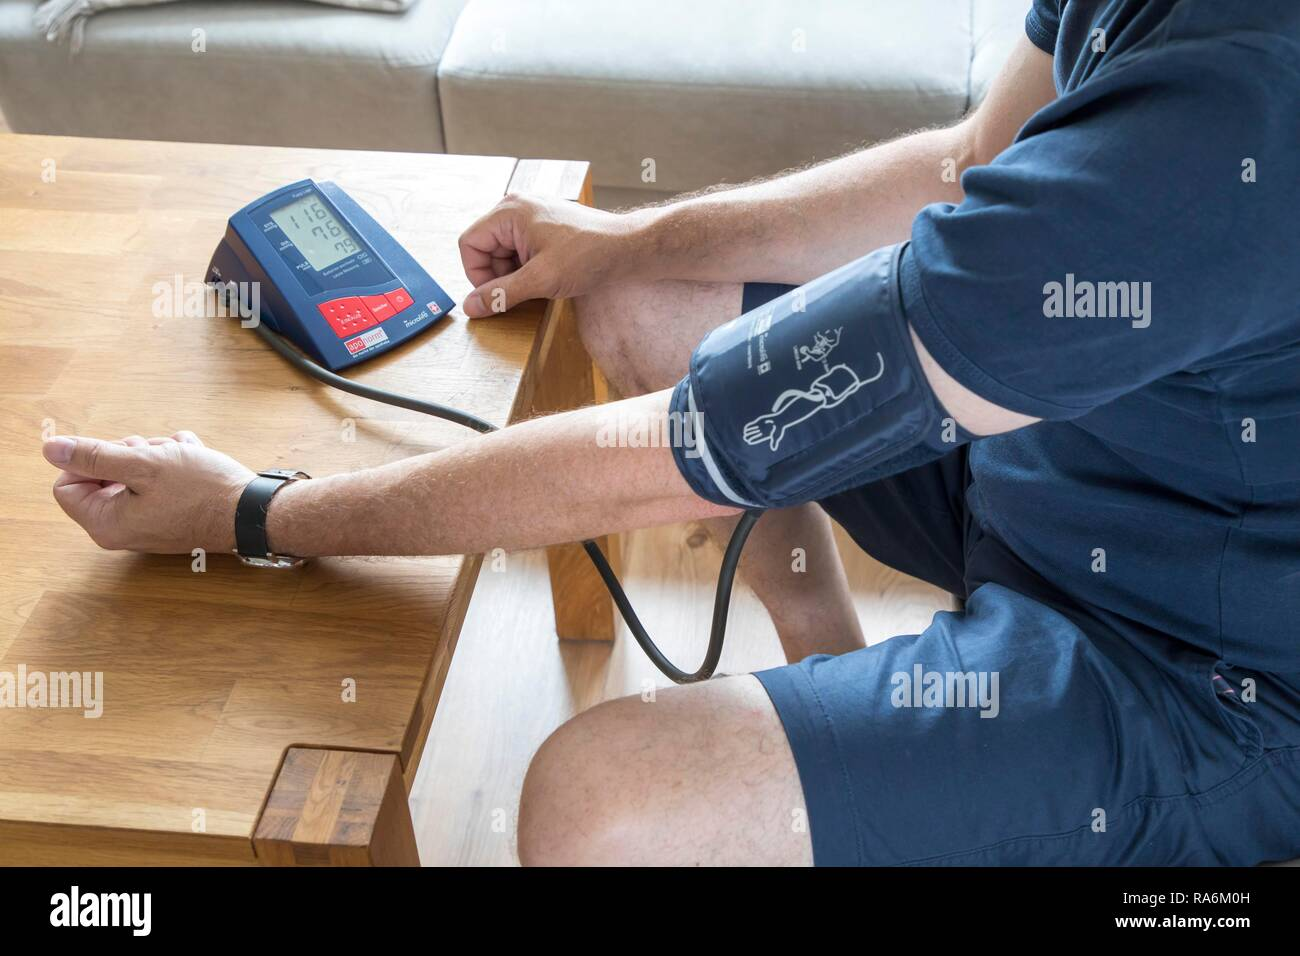 Blood pressure measurement, with an automatic upper arm blood pressure monitor, Germany - Stock Image